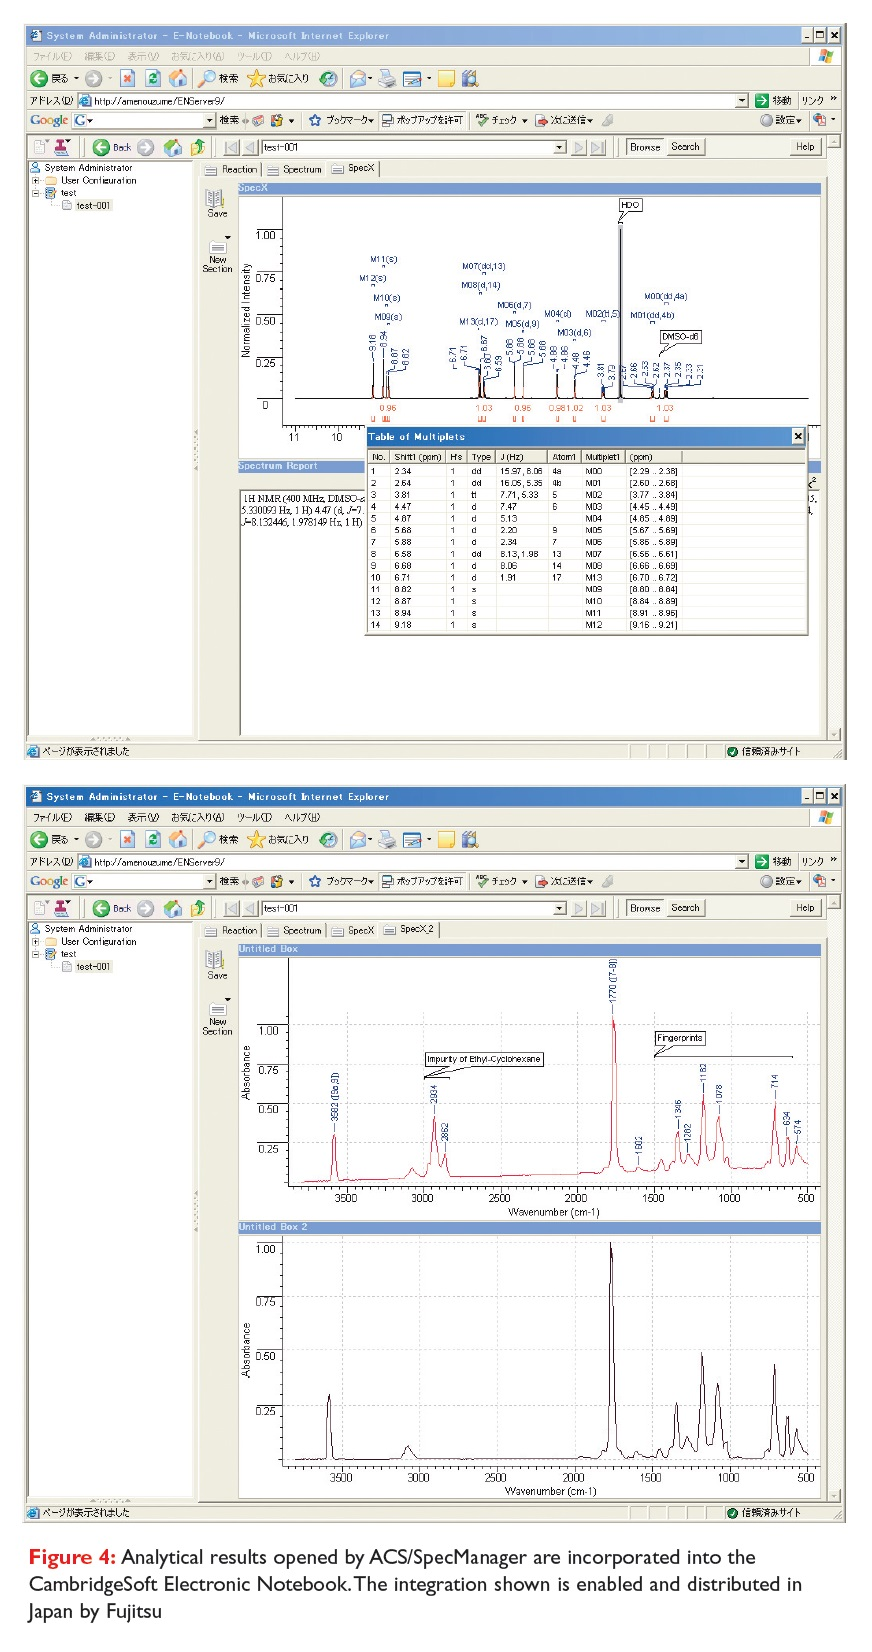 Figure 4 Analytical results opened by ACS/SpecManageer are incorporated into the CambridgeSoft Electronic Notebook